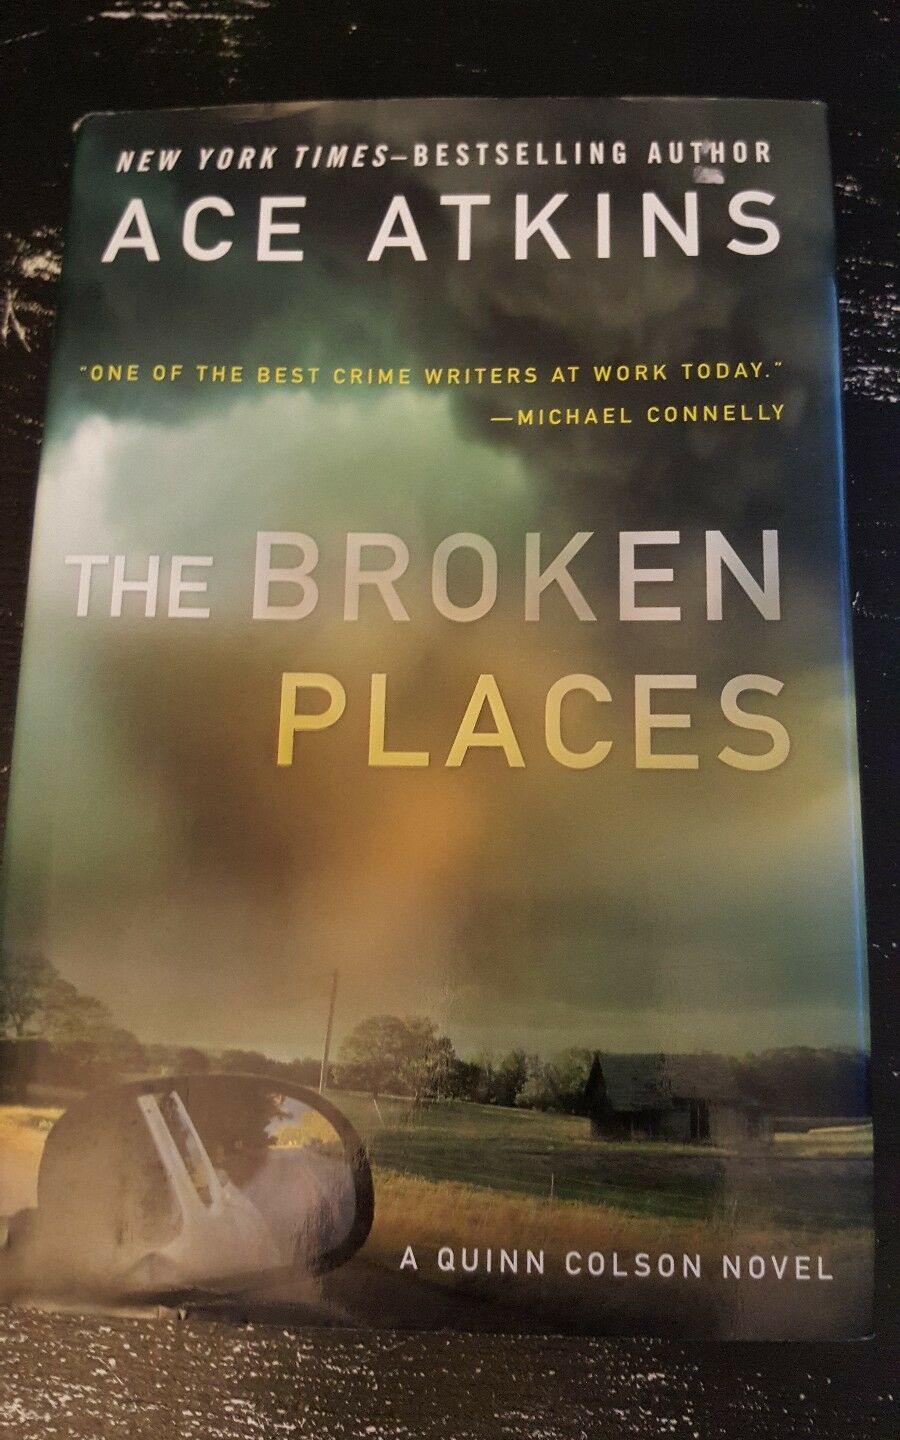 A Quinn Colson Novel: The Broken Places 3 by Ace Atkins (2013, Hardcover) |  eBay